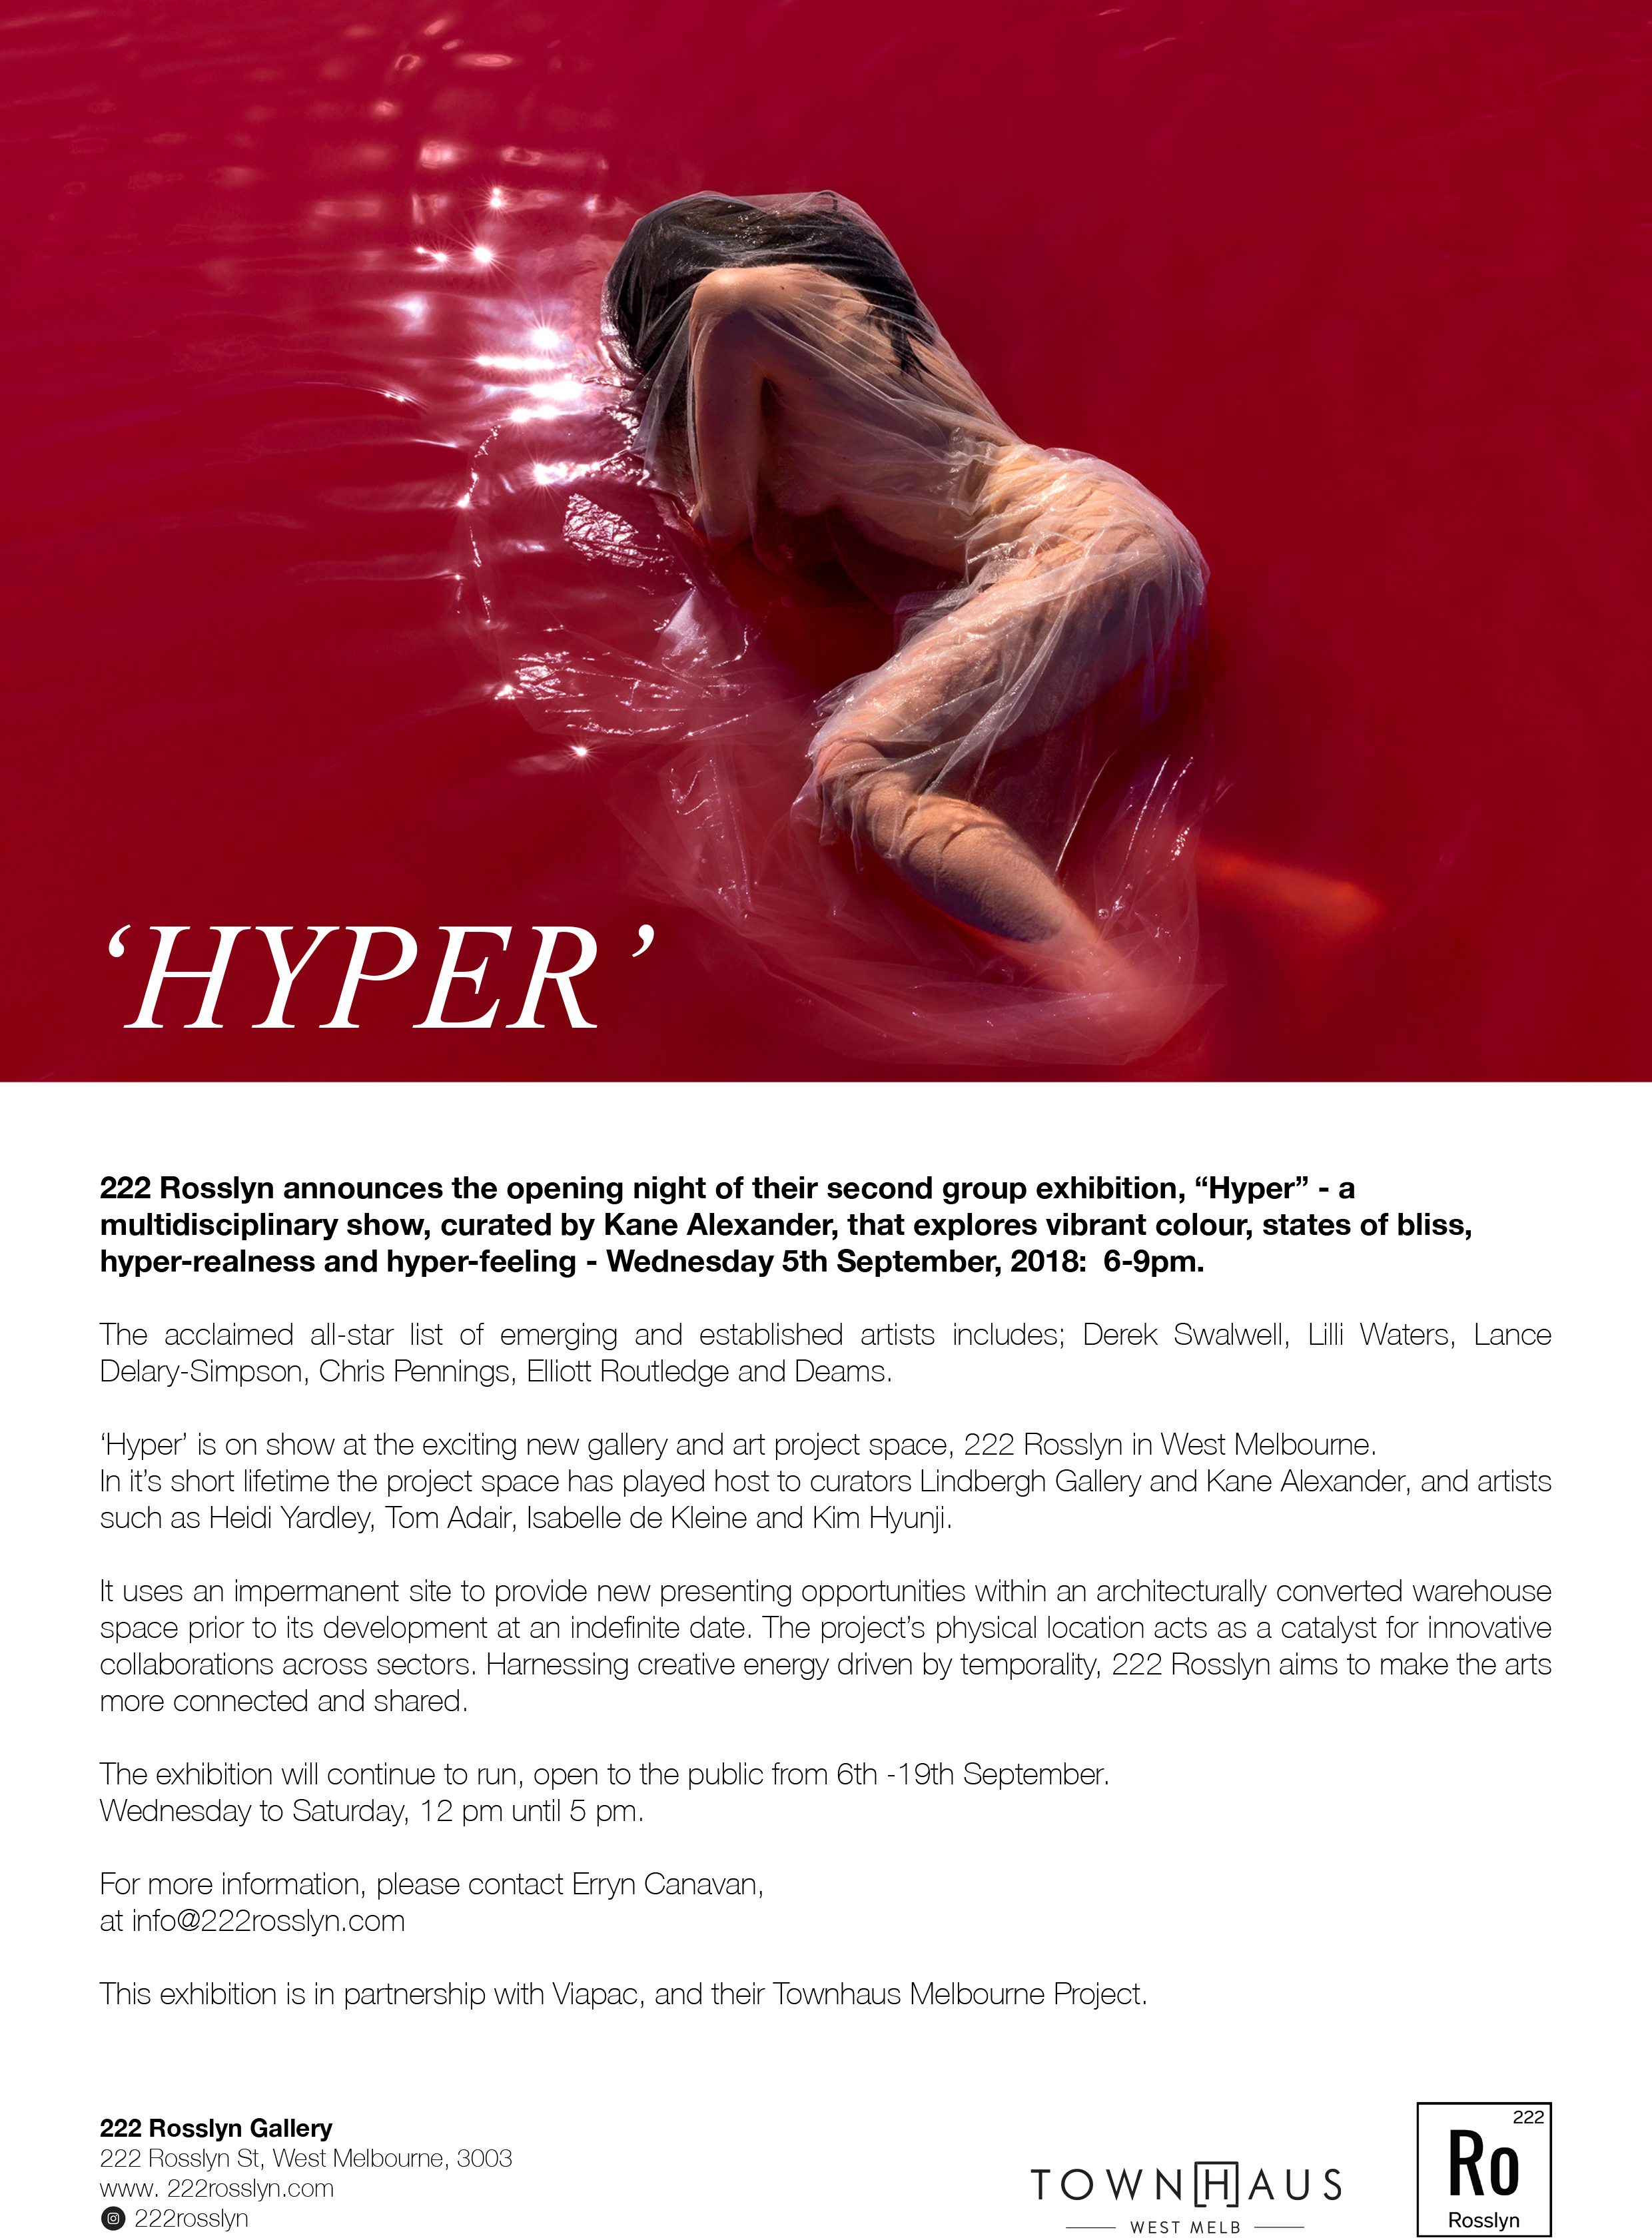 Hyper @ 222 Rosslyn - Press Release.jpg